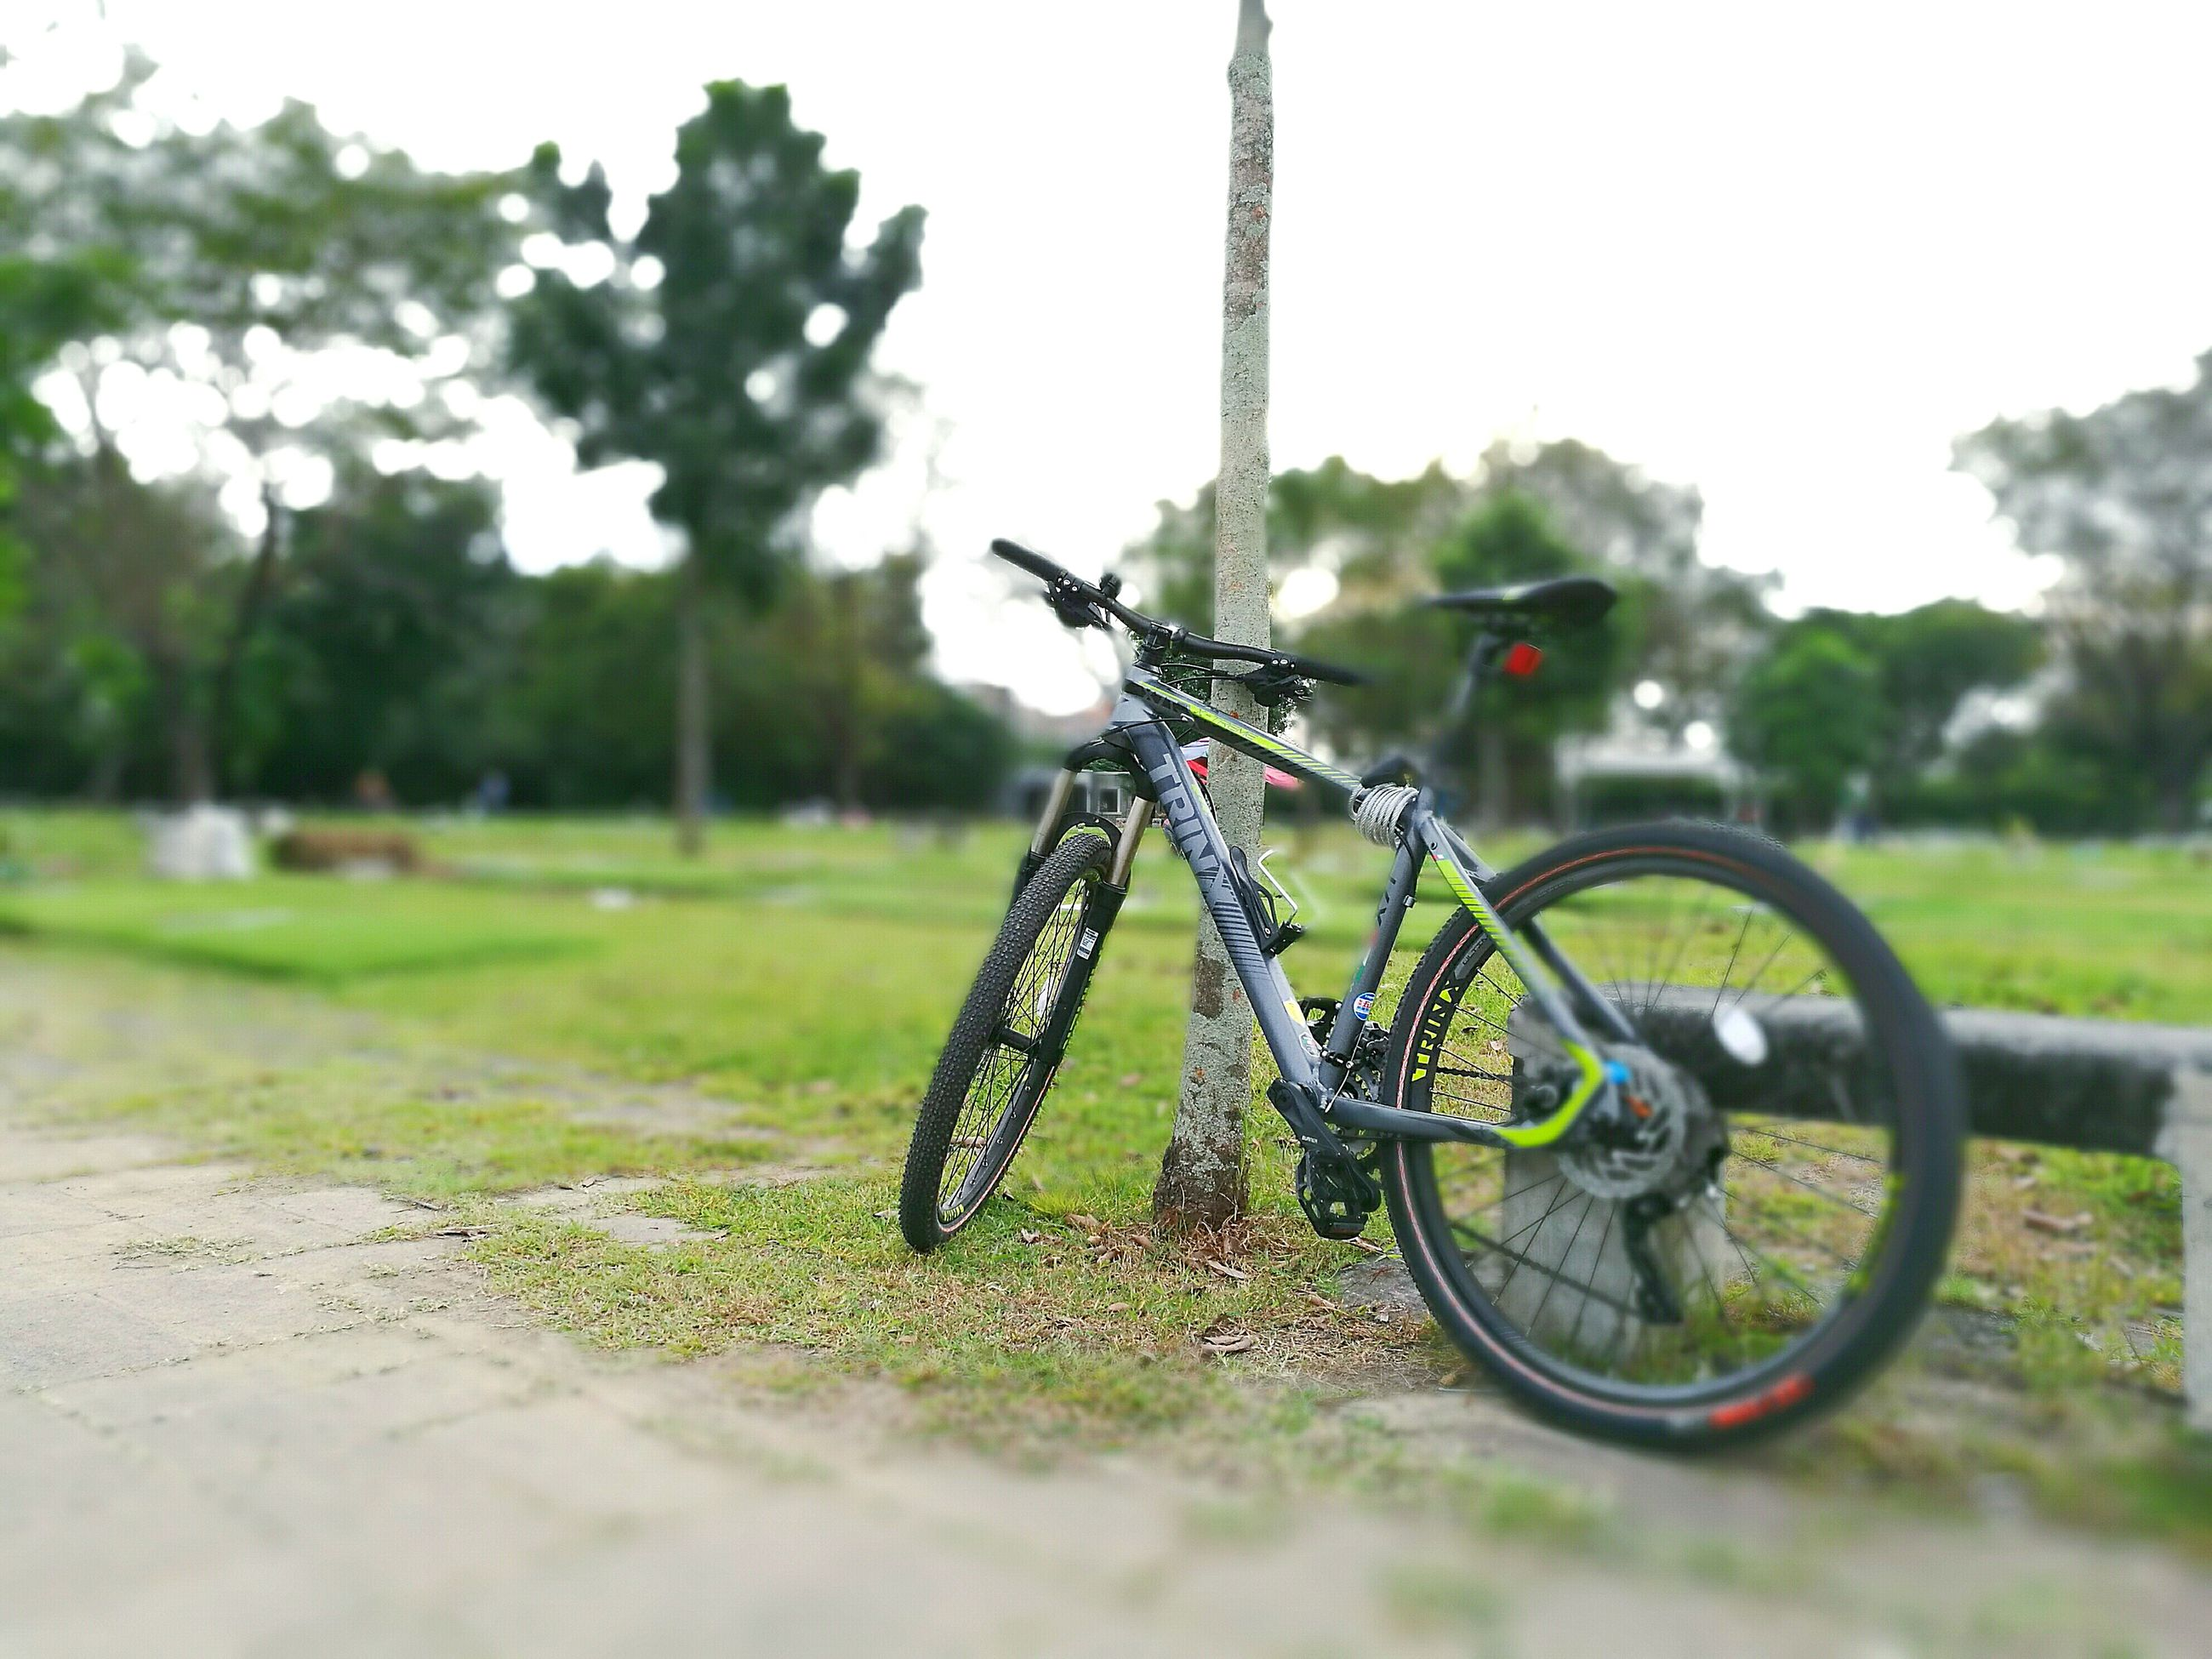 transportation, land vehicle, bicycle, mode of transport, no people, outdoors, grass, day, nature, close-up